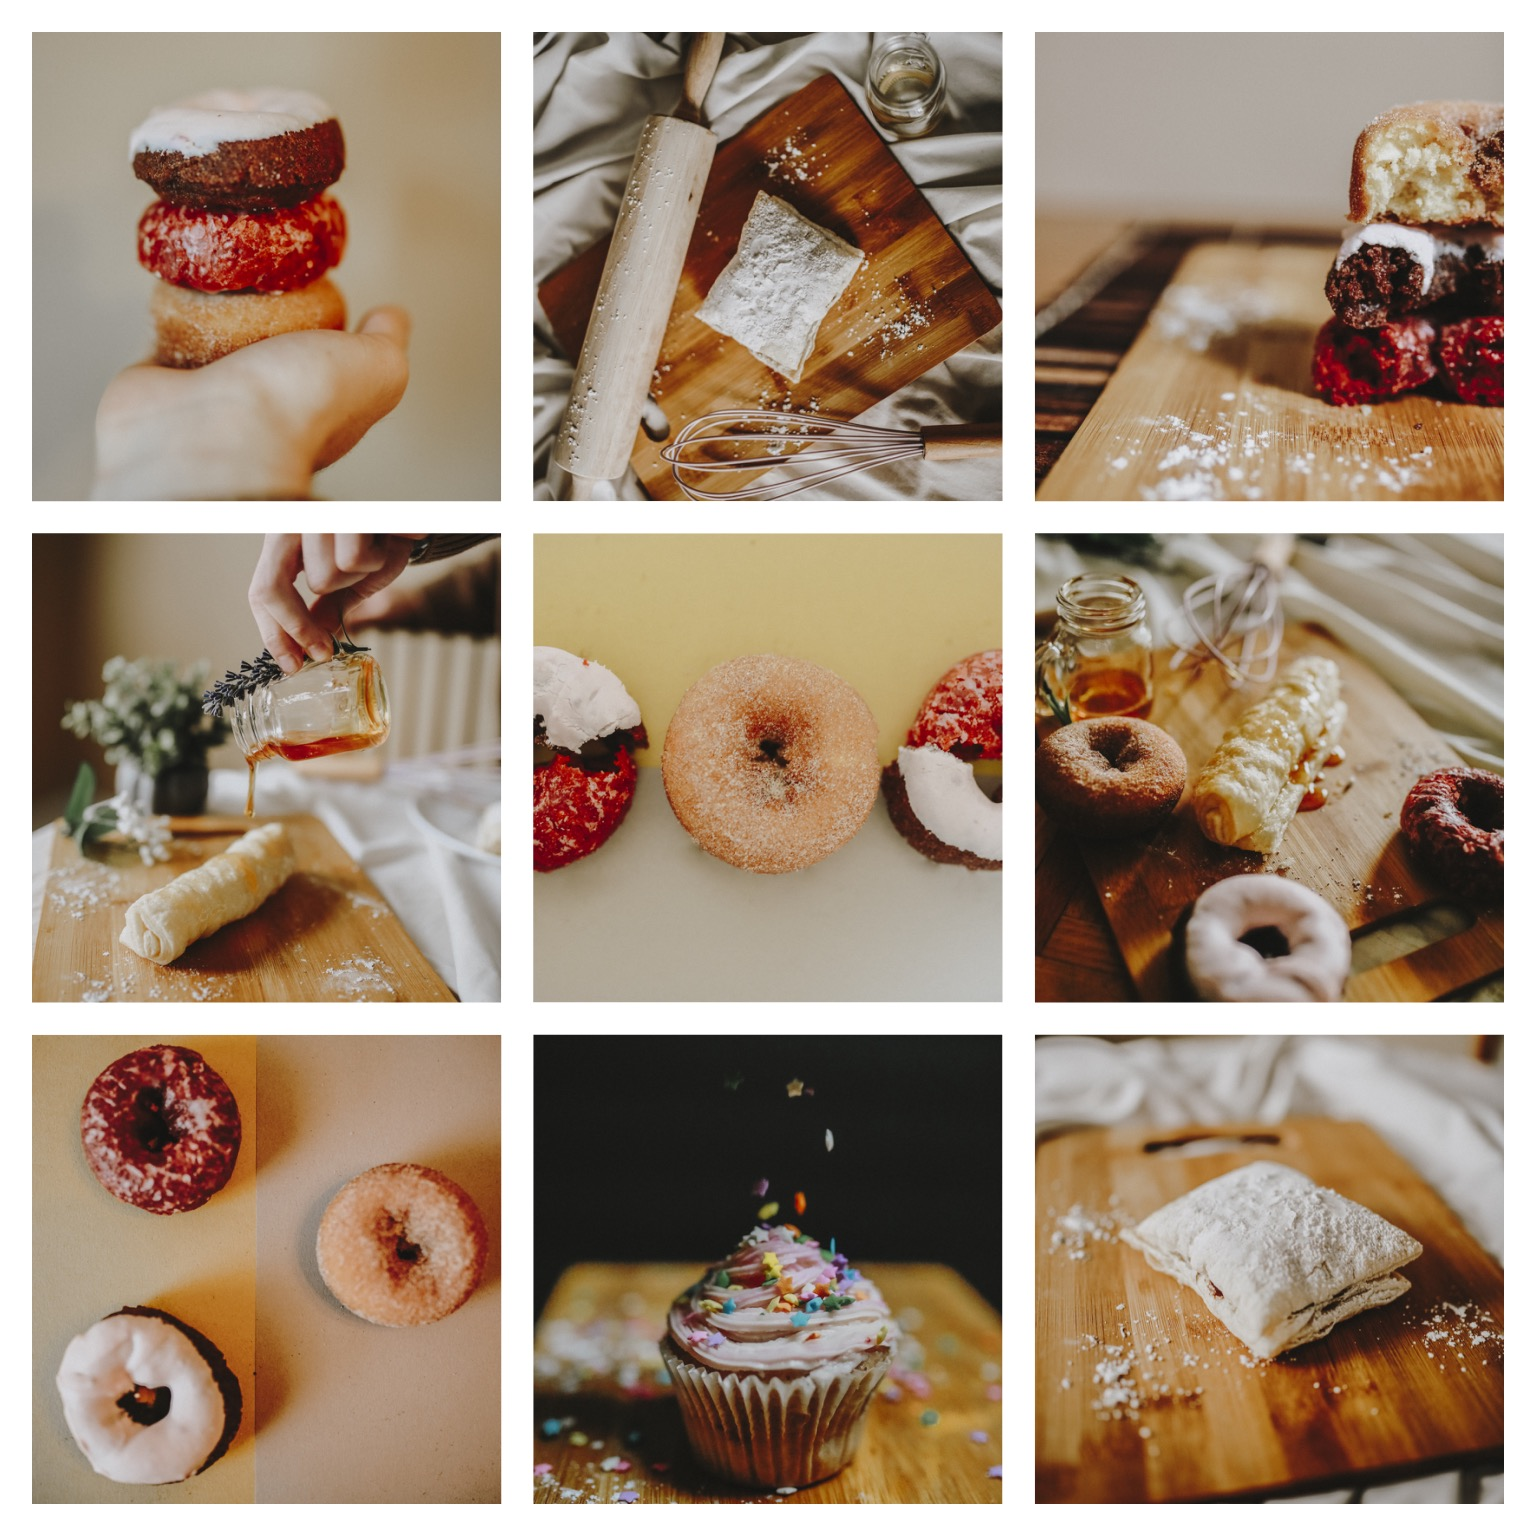 Instagram Food Mockup two: - Examples of what an instagram page I put together can look like aesthetically. This one has more of a yellow, red warm undertone